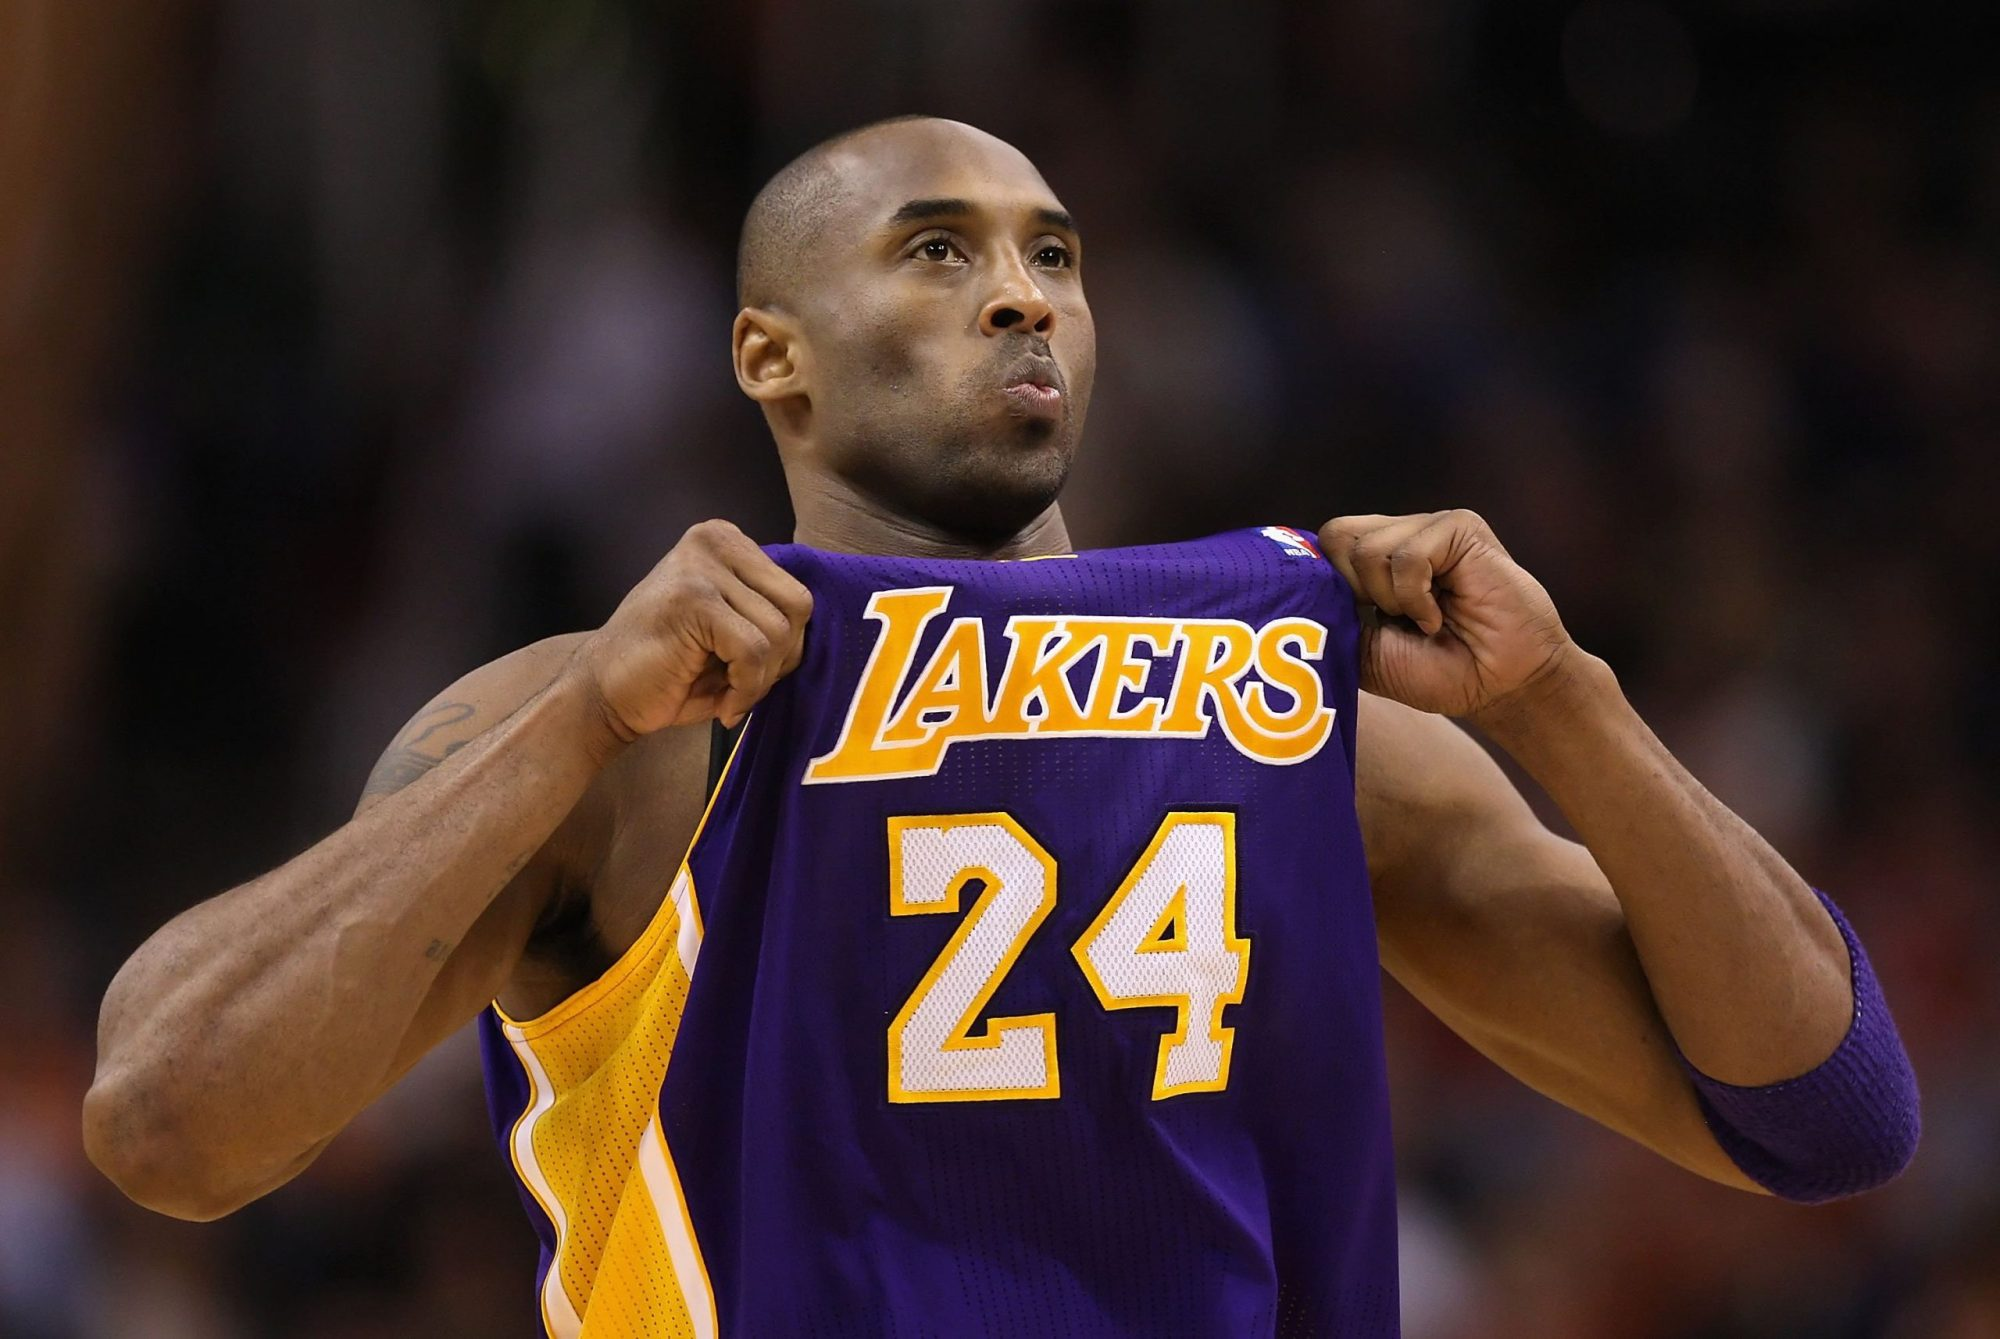 Kobe Bryant #24 of the Los Angeles Lakers adjusts